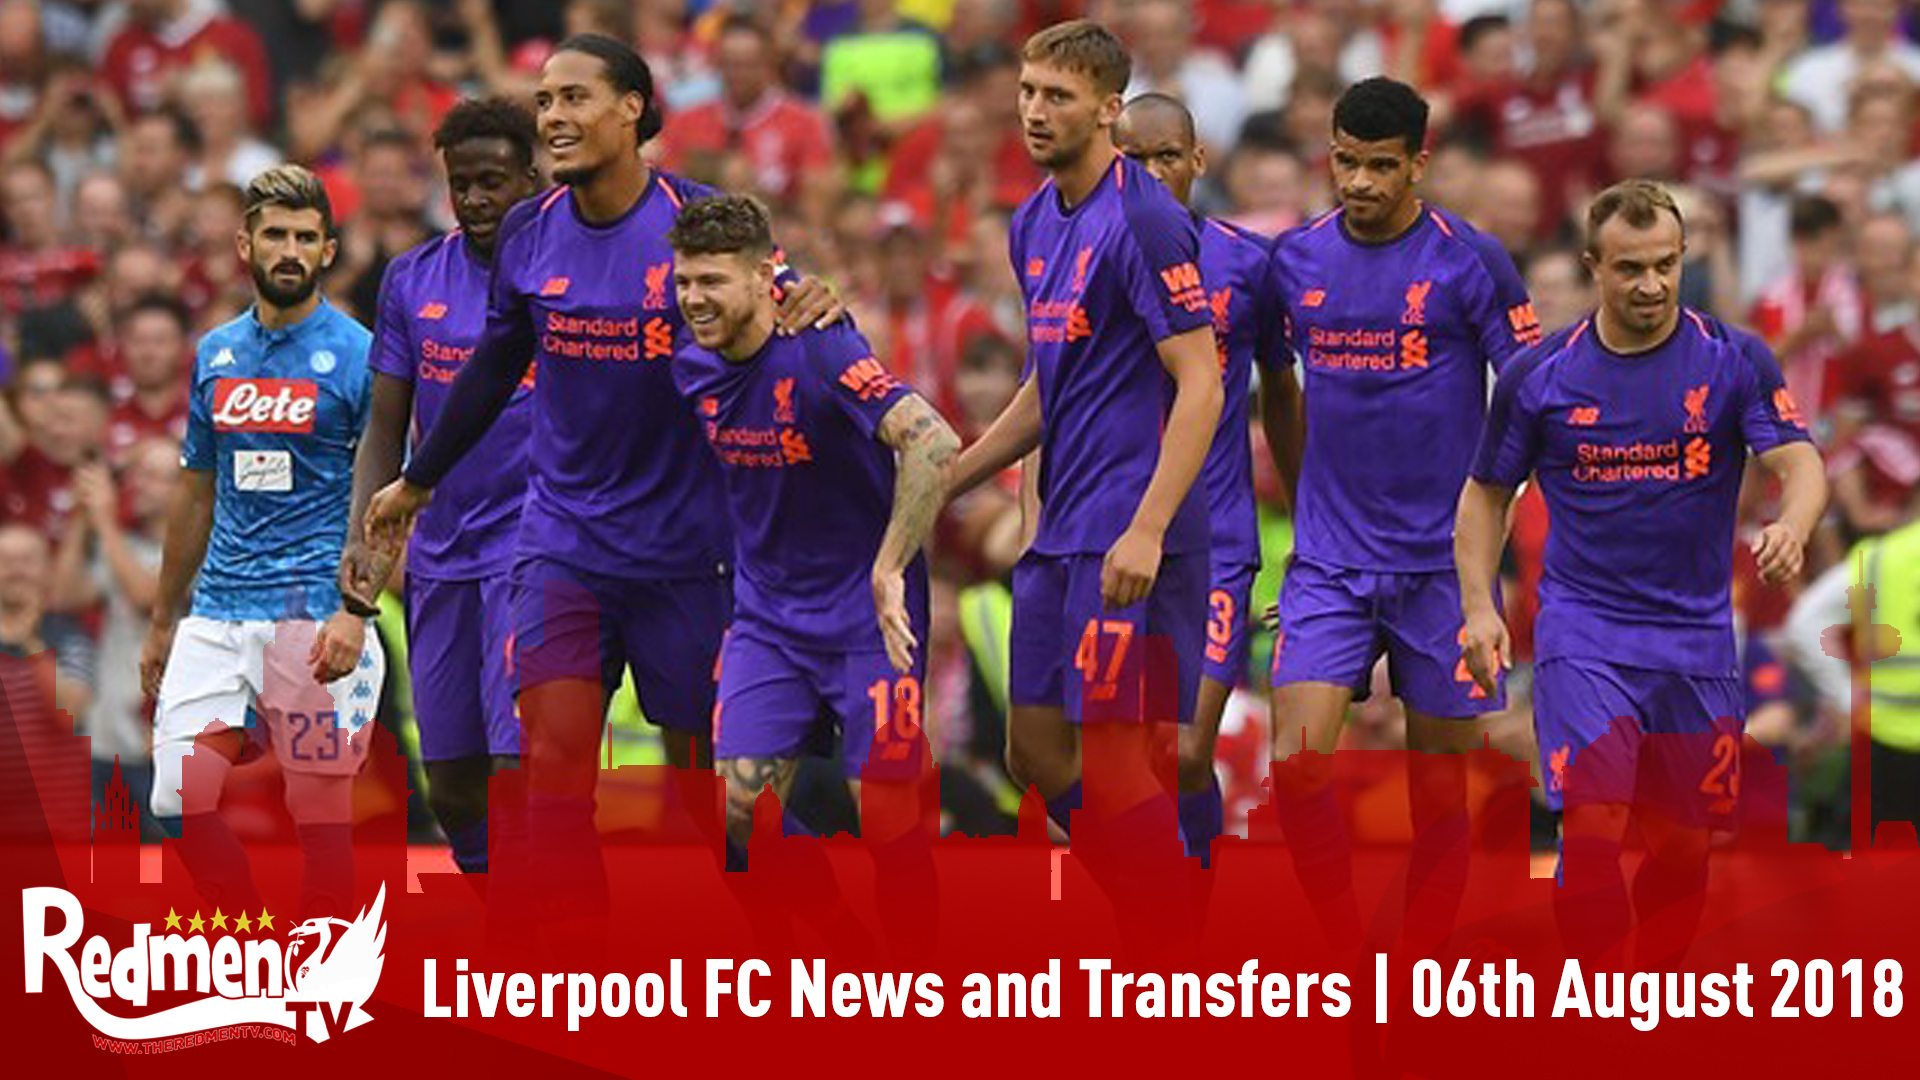 4bb33af9285 Recent News - Page 78 of 186 - The Redmen TV